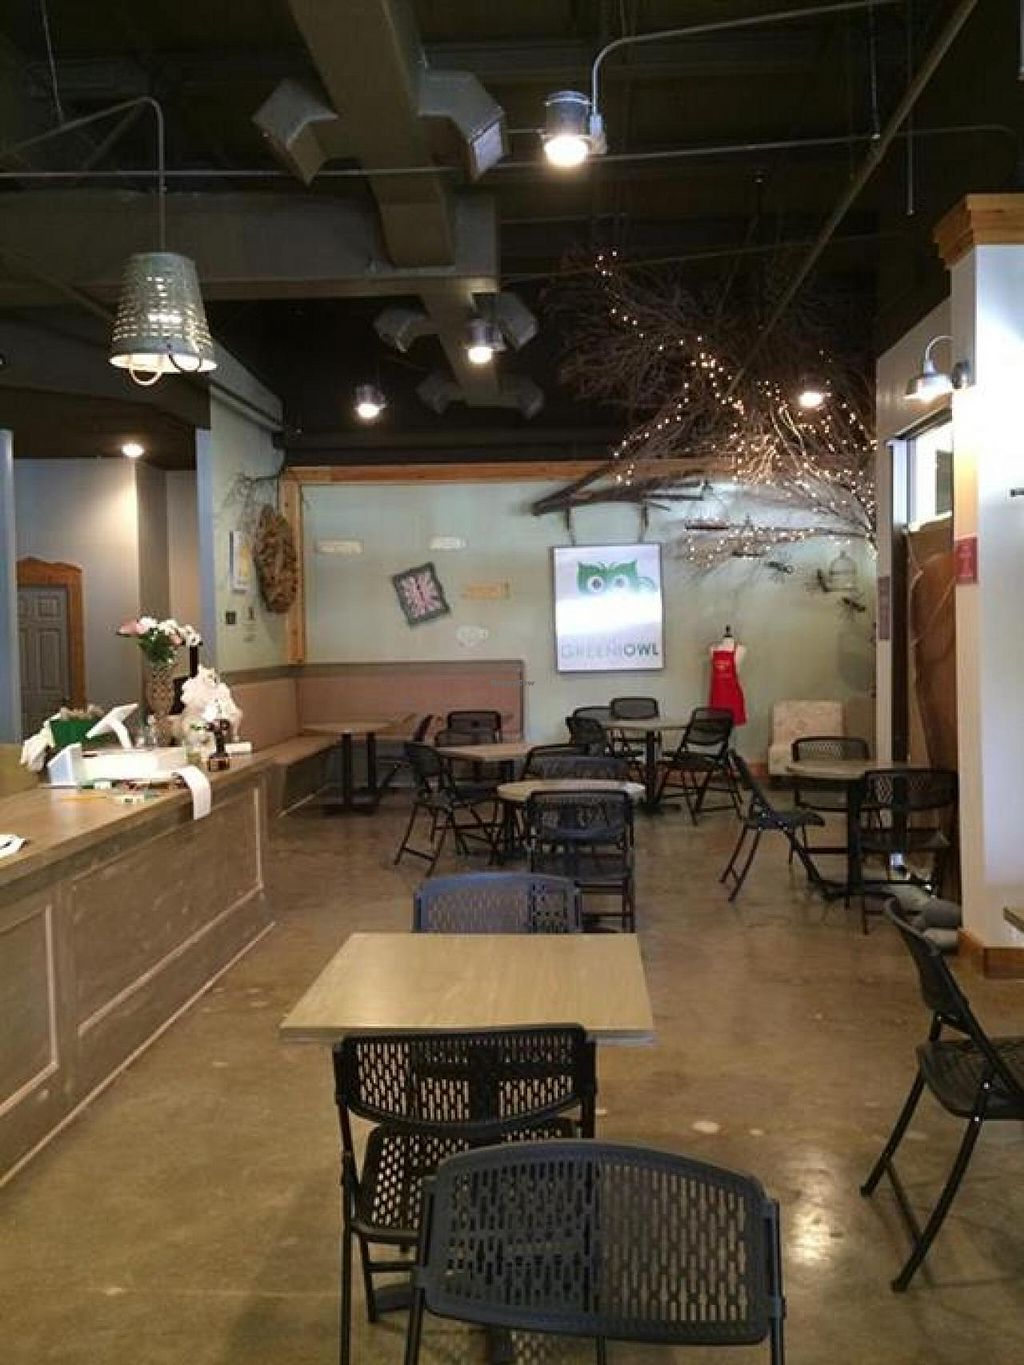 """Photo of Green Owl Deli  by <a href=""""/members/profile/community"""">community</a> <br/>Green Owl Deli <br/> May 30, 2014  - <a href='/contact/abuse/image/47740/71052'>Report</a>"""